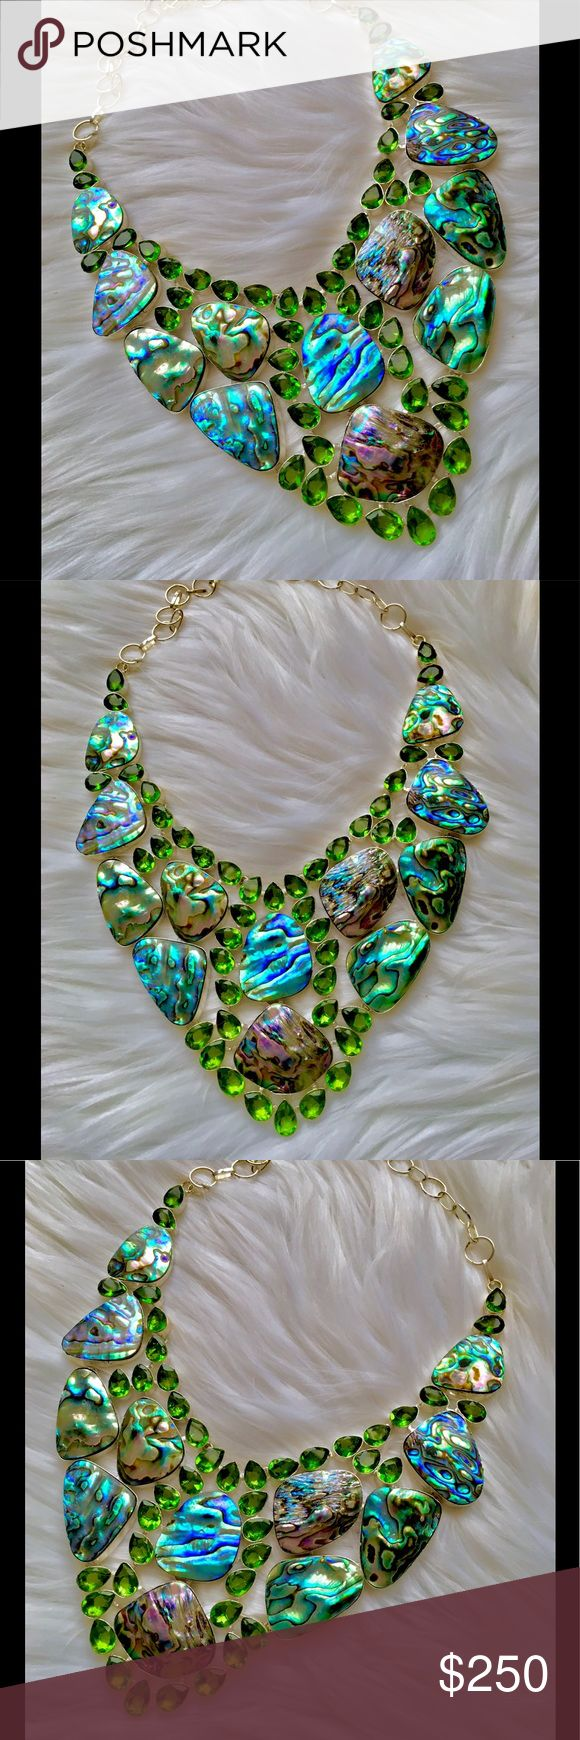 🌴🐳🐚 Abalone Shell & Peridot necklace 🐙🐬✨ Beautiful Abalone shell necklace embellished with Peridot gemstones, every piece of shell has a magical display of different markings & colors! Truly stunning ✨ Jewelry Necklaces